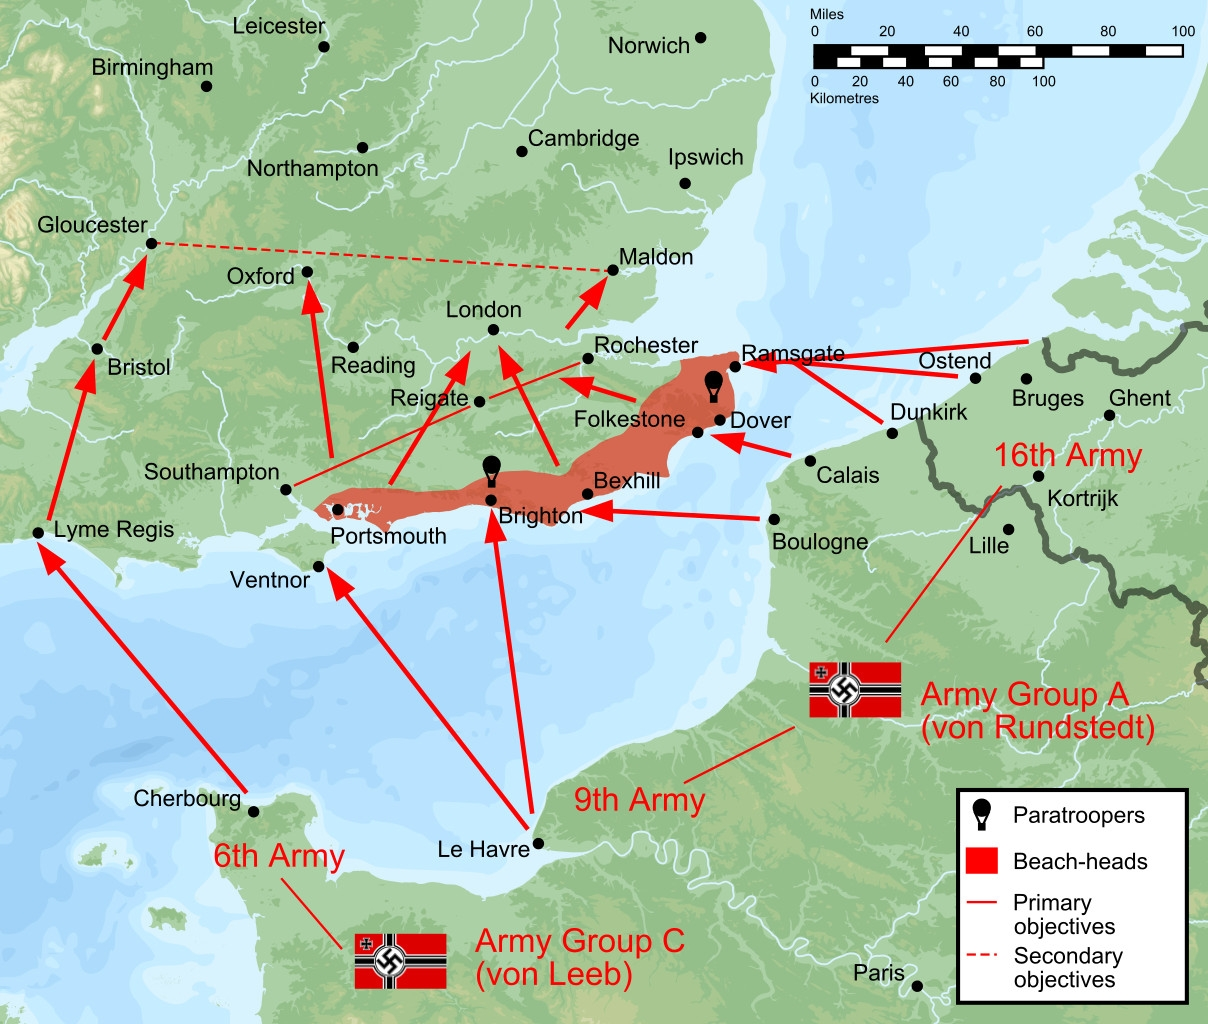 42 Maps That Explain World War Ii - Vox pertaining to German Invasion Of Europe Map